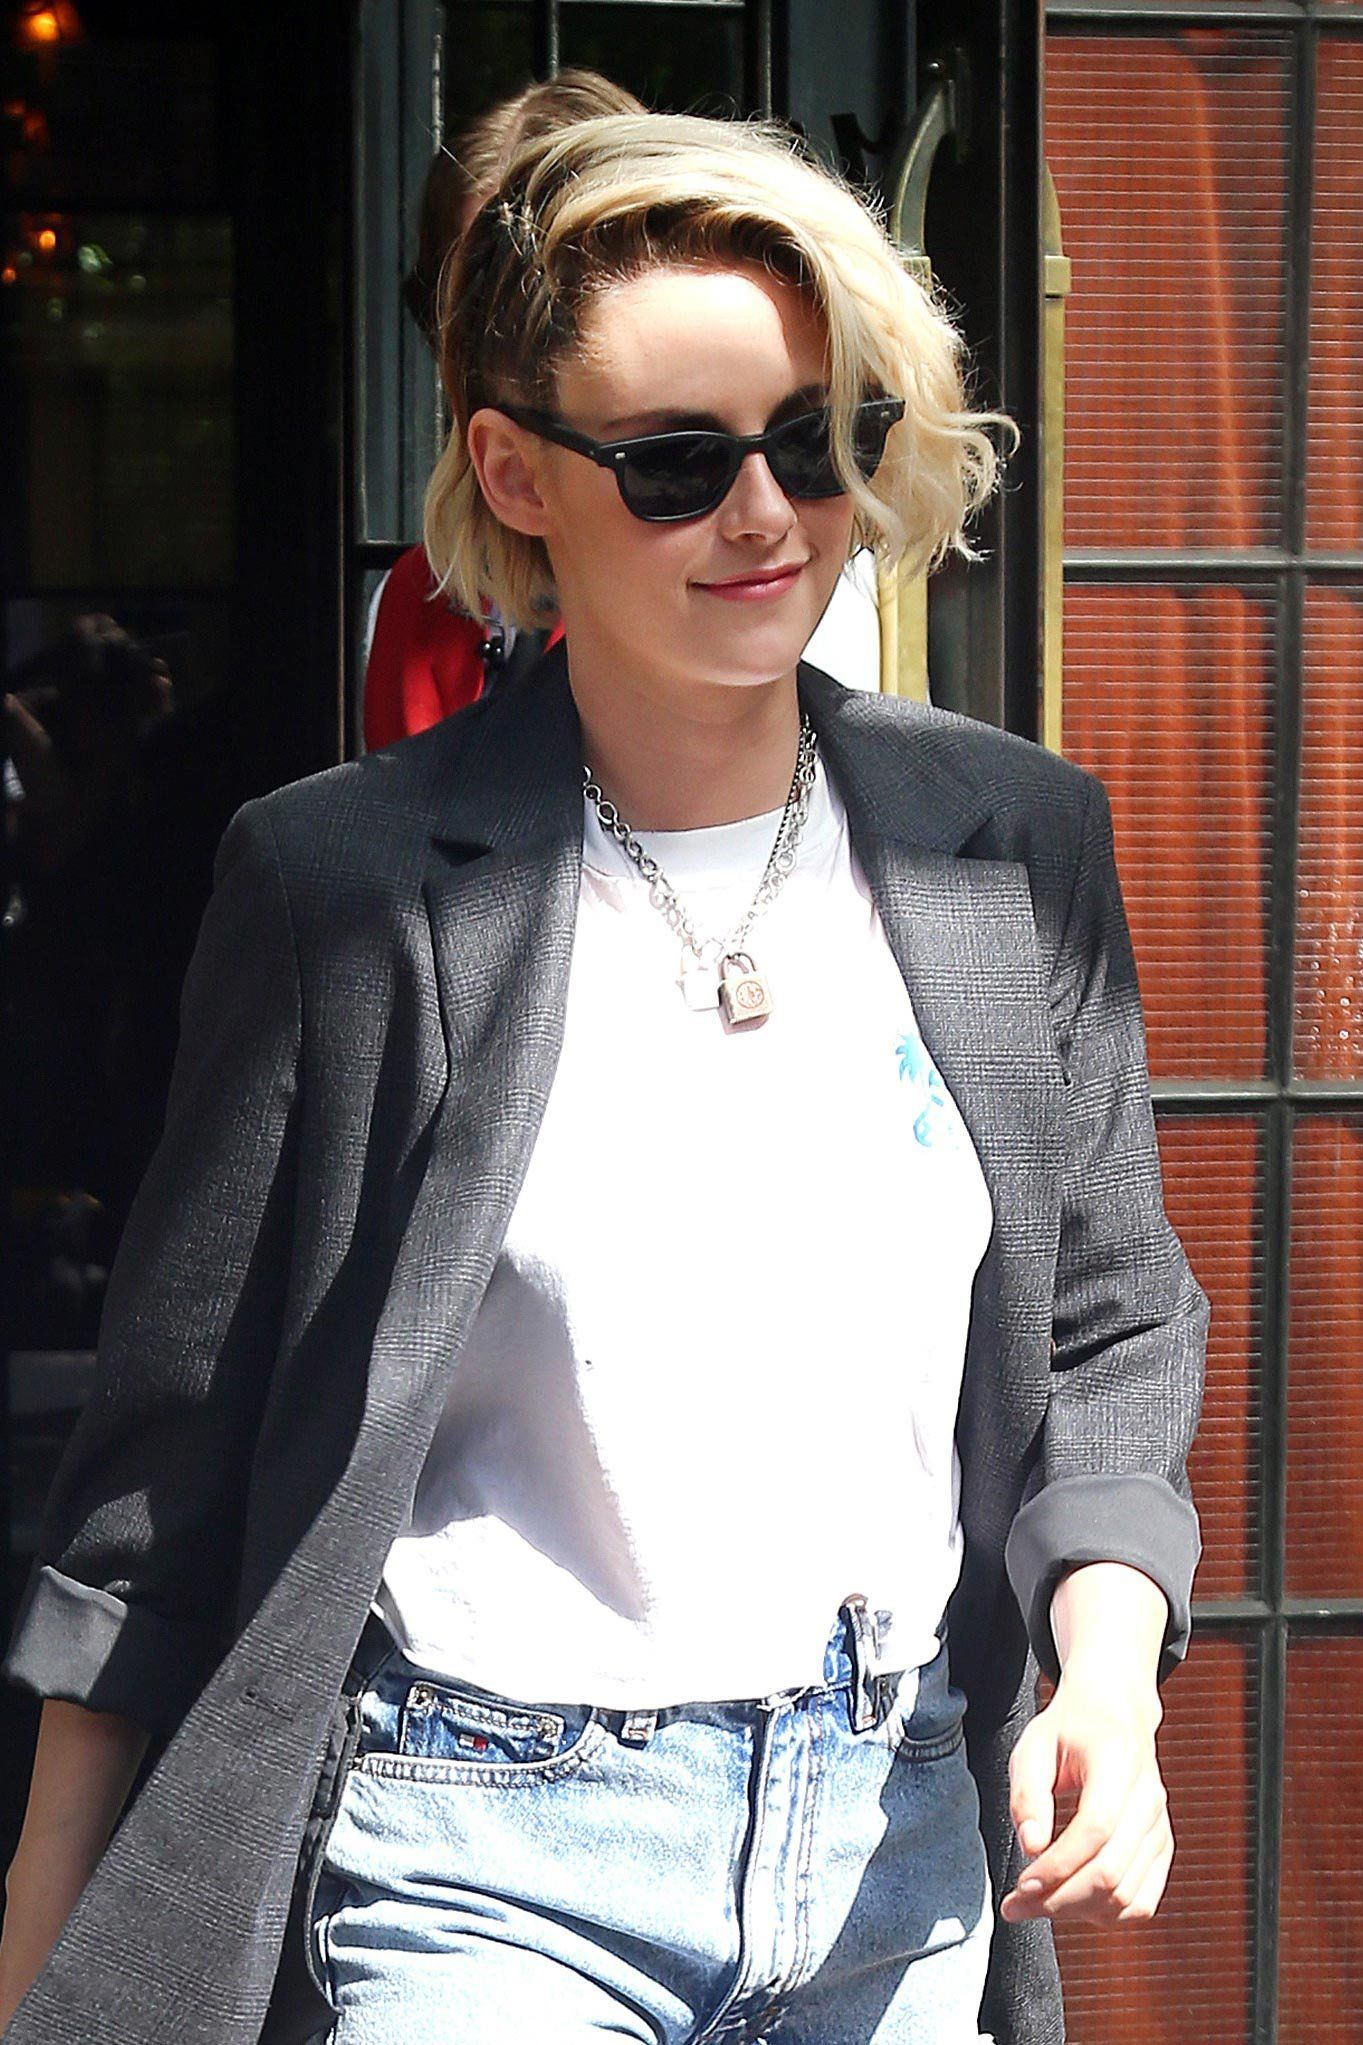 Bleached hair and inky roots may enjoy an eternal cool steeped in rock 'n' roll, but leave it to Kristen Stewart to put the look on the same summer level as a subtle ombré dye job.